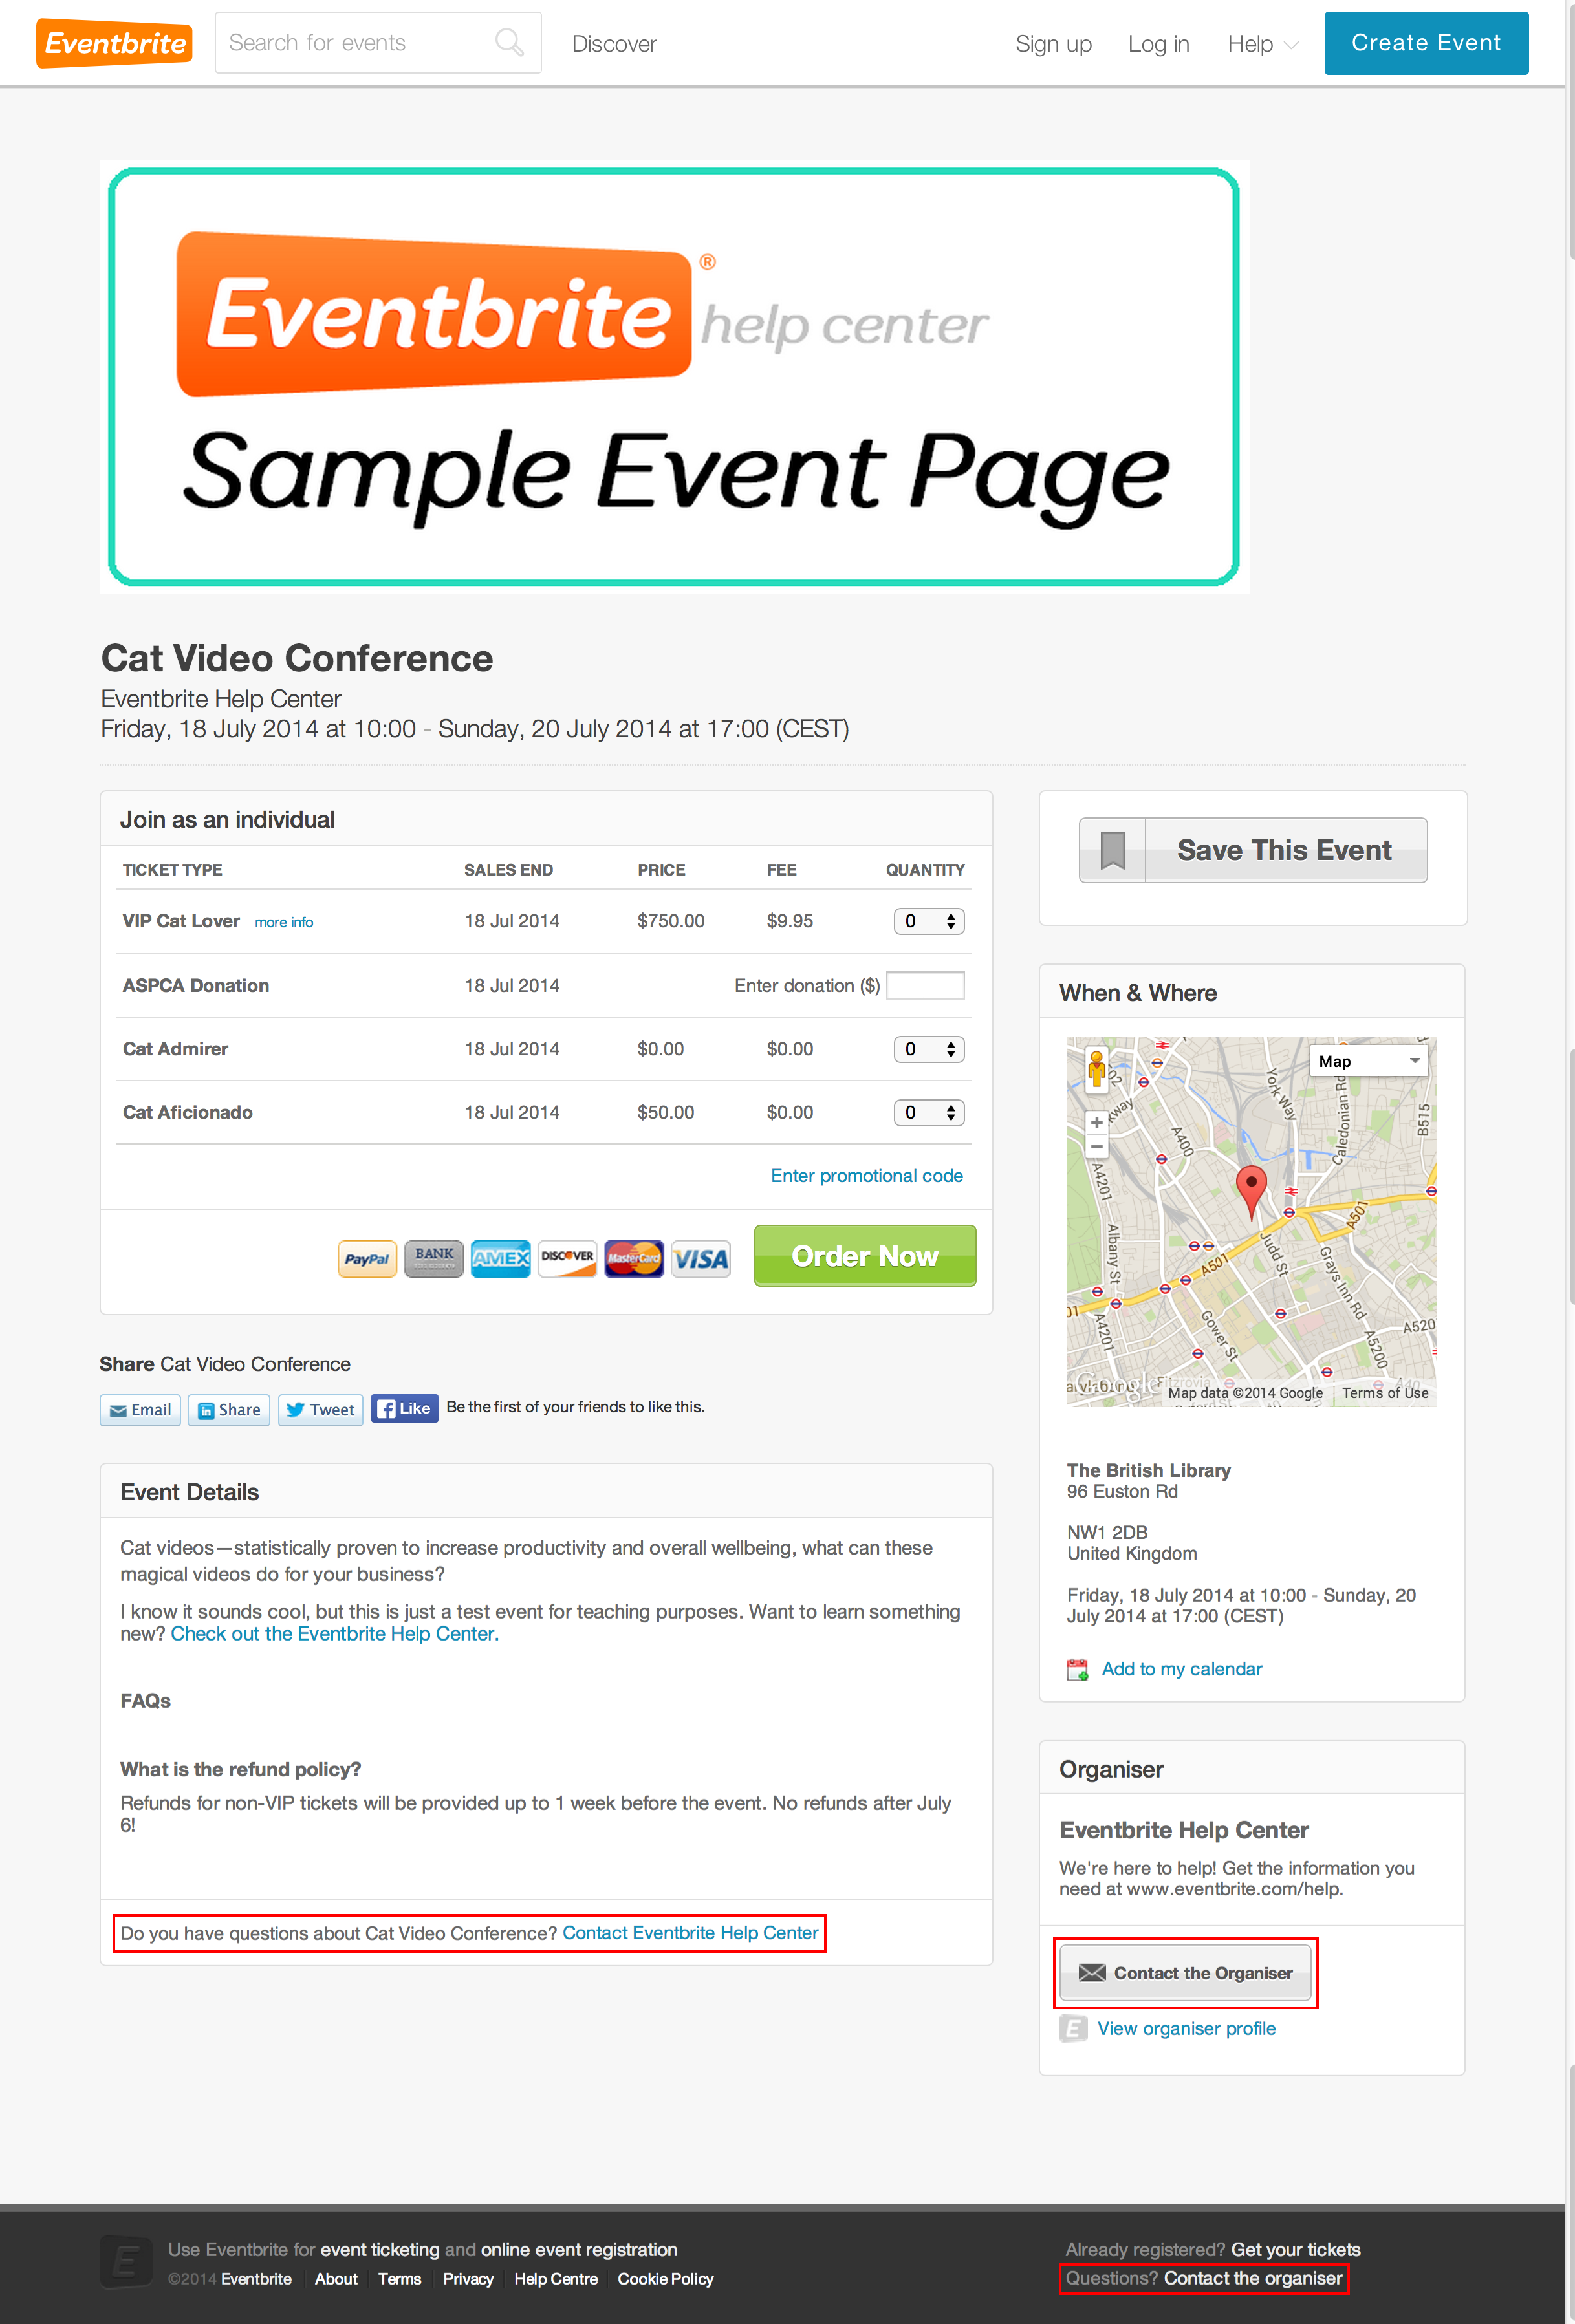 There are links to contact the event organiser in the header, footer, event details, and right-hand sidebar for the event.